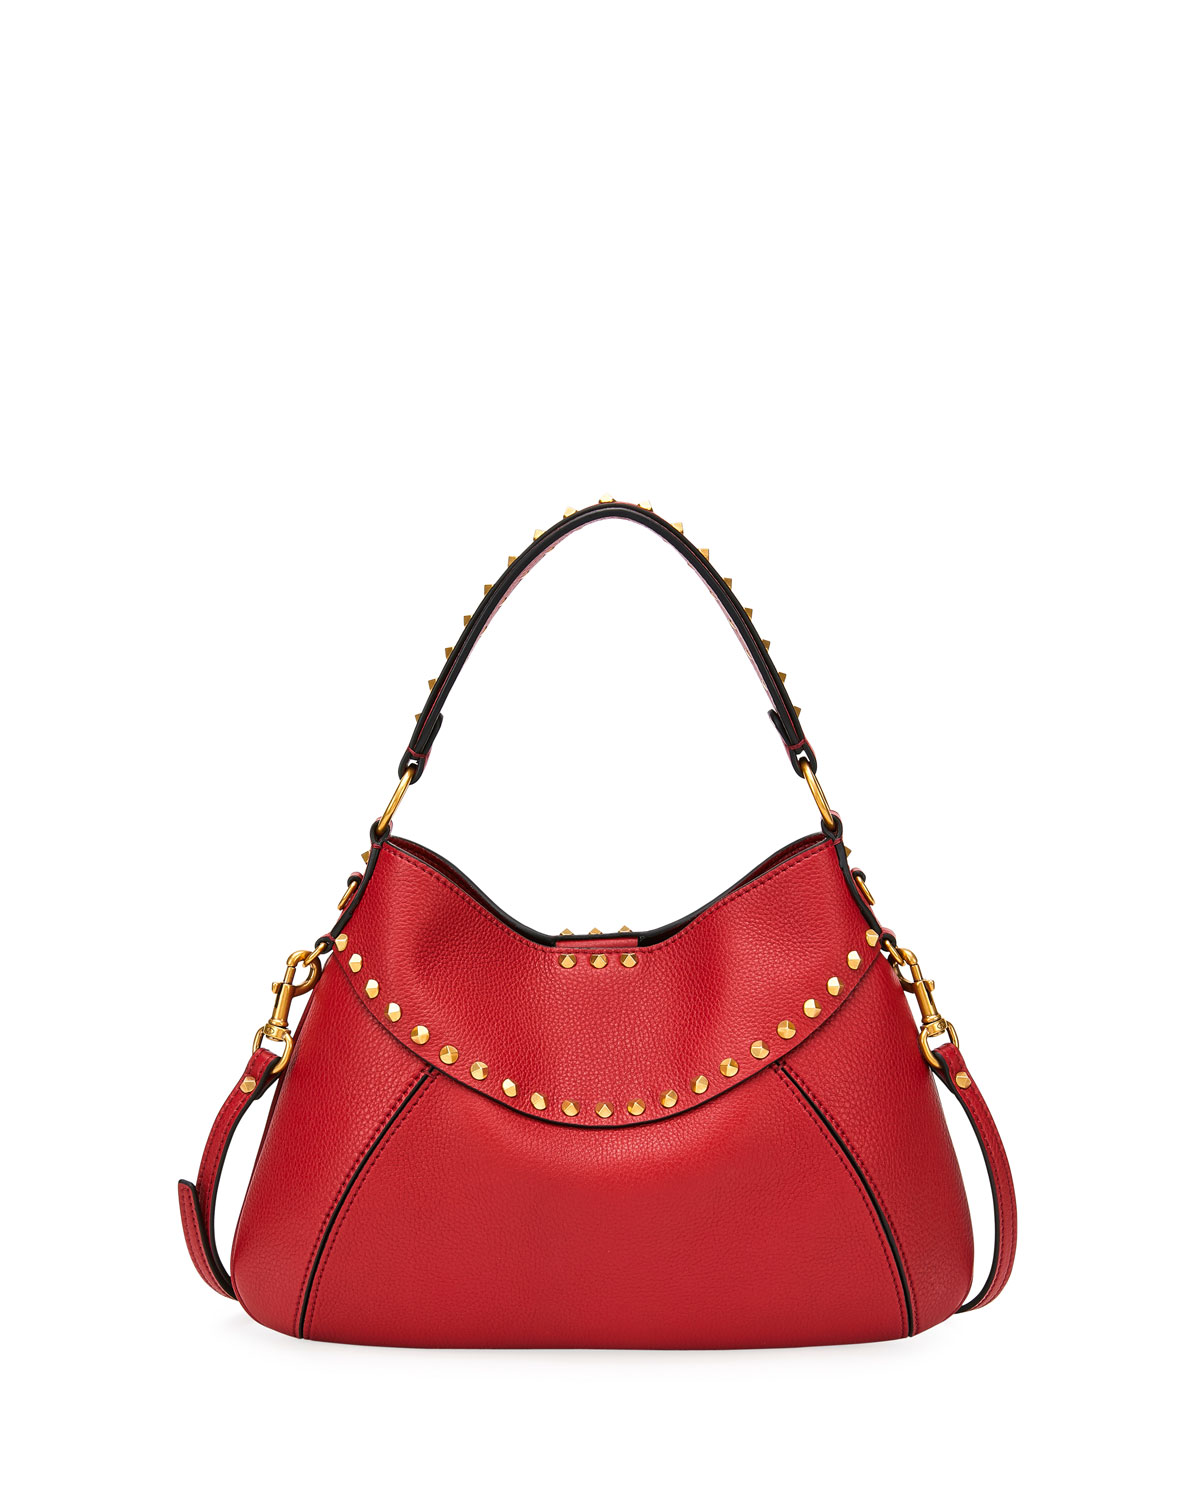 Valentino Leathers TWINKLE STUDDED SMALL LEATHER HOBO BAG